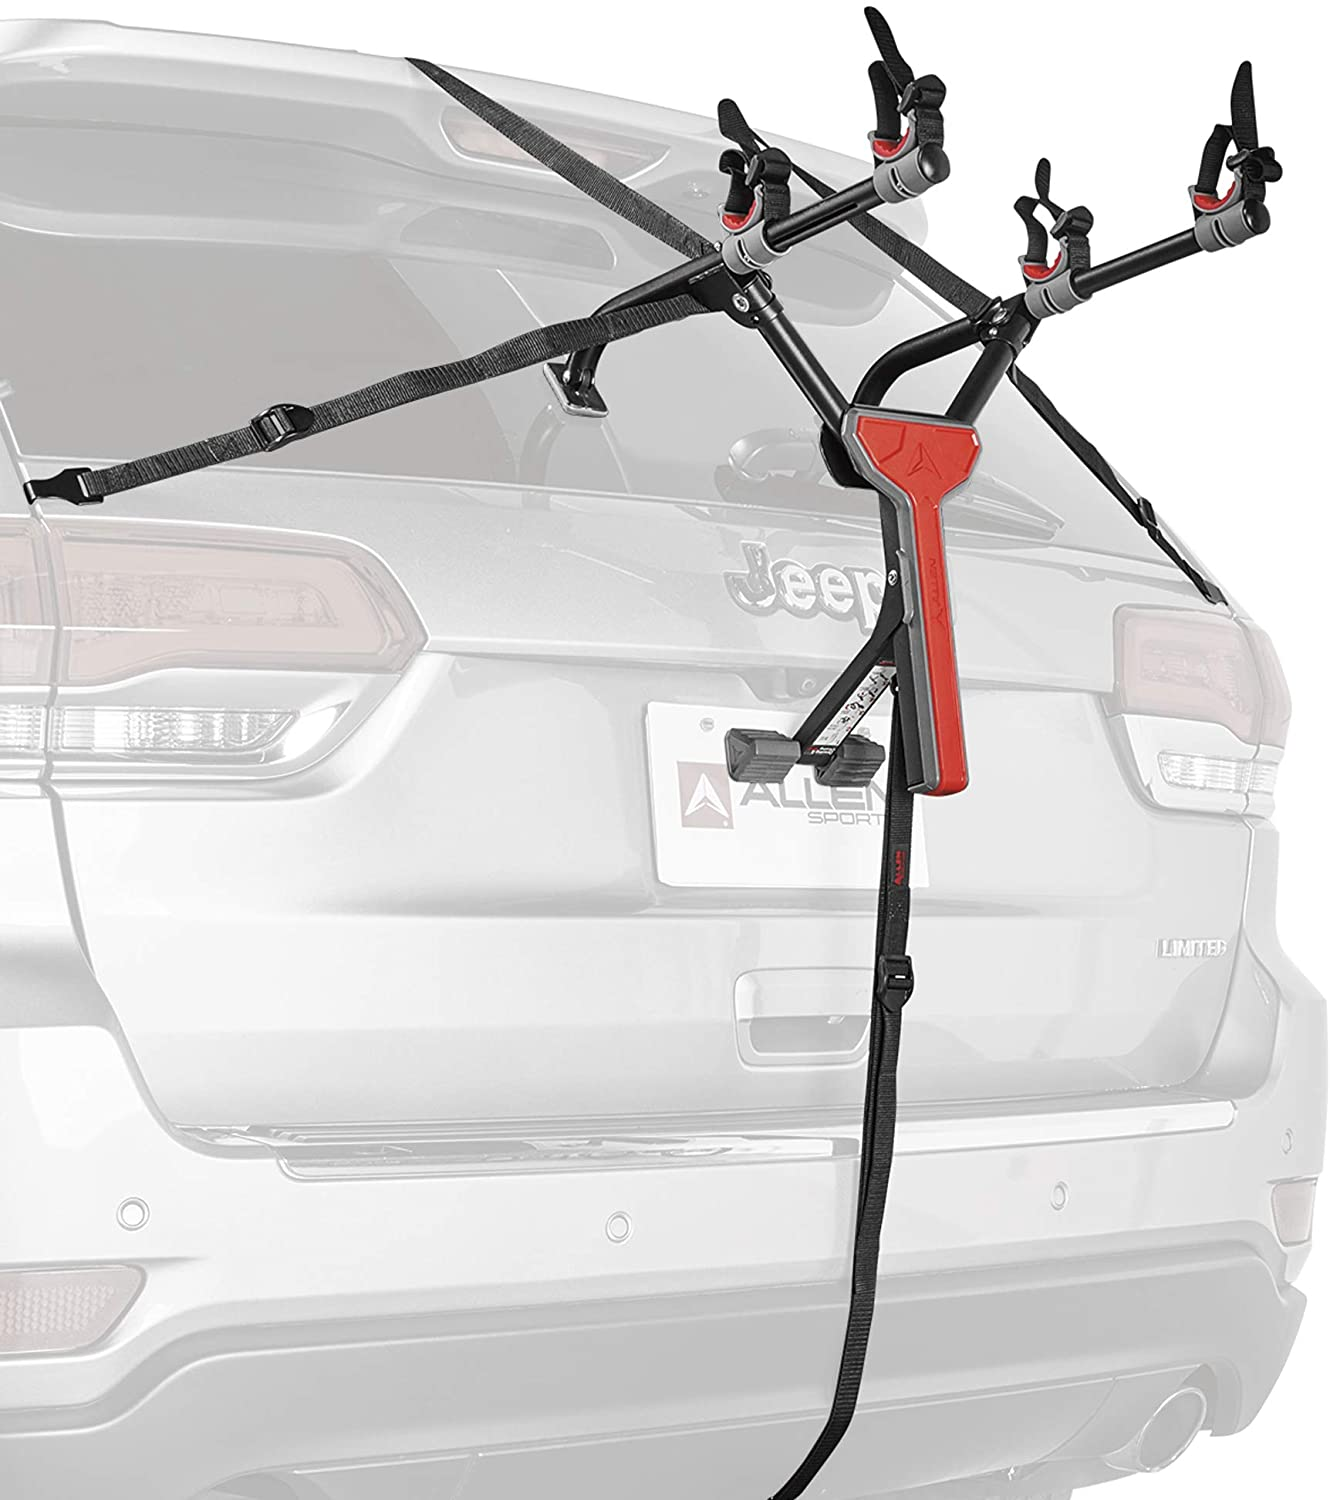 A photo of a car's trunk where a black bike rack fully-assembled is attached. Two bike holders and strong straps hold the rack in place.